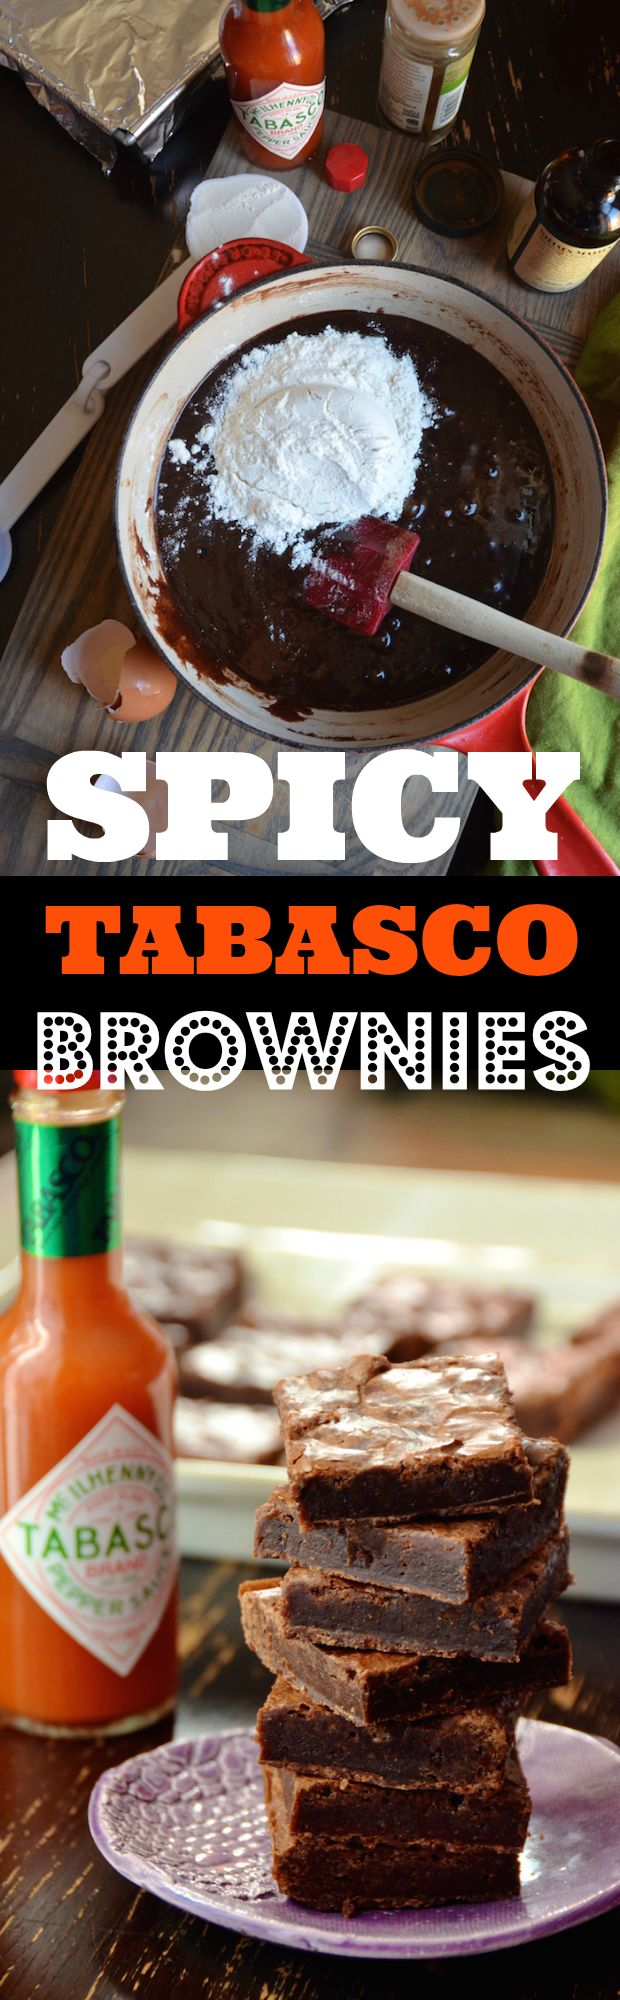 This is the perfect fudgy brownie recipe made even better with a dash of spicy Tabasco hot sauce. Sounds crazy, but it works SO well. It's a simple one bowl brownie recipe, but the spice makes it perfect to serve at parties. Try this at a BBQ, a summer cookout or a Cinco de Mayo party.